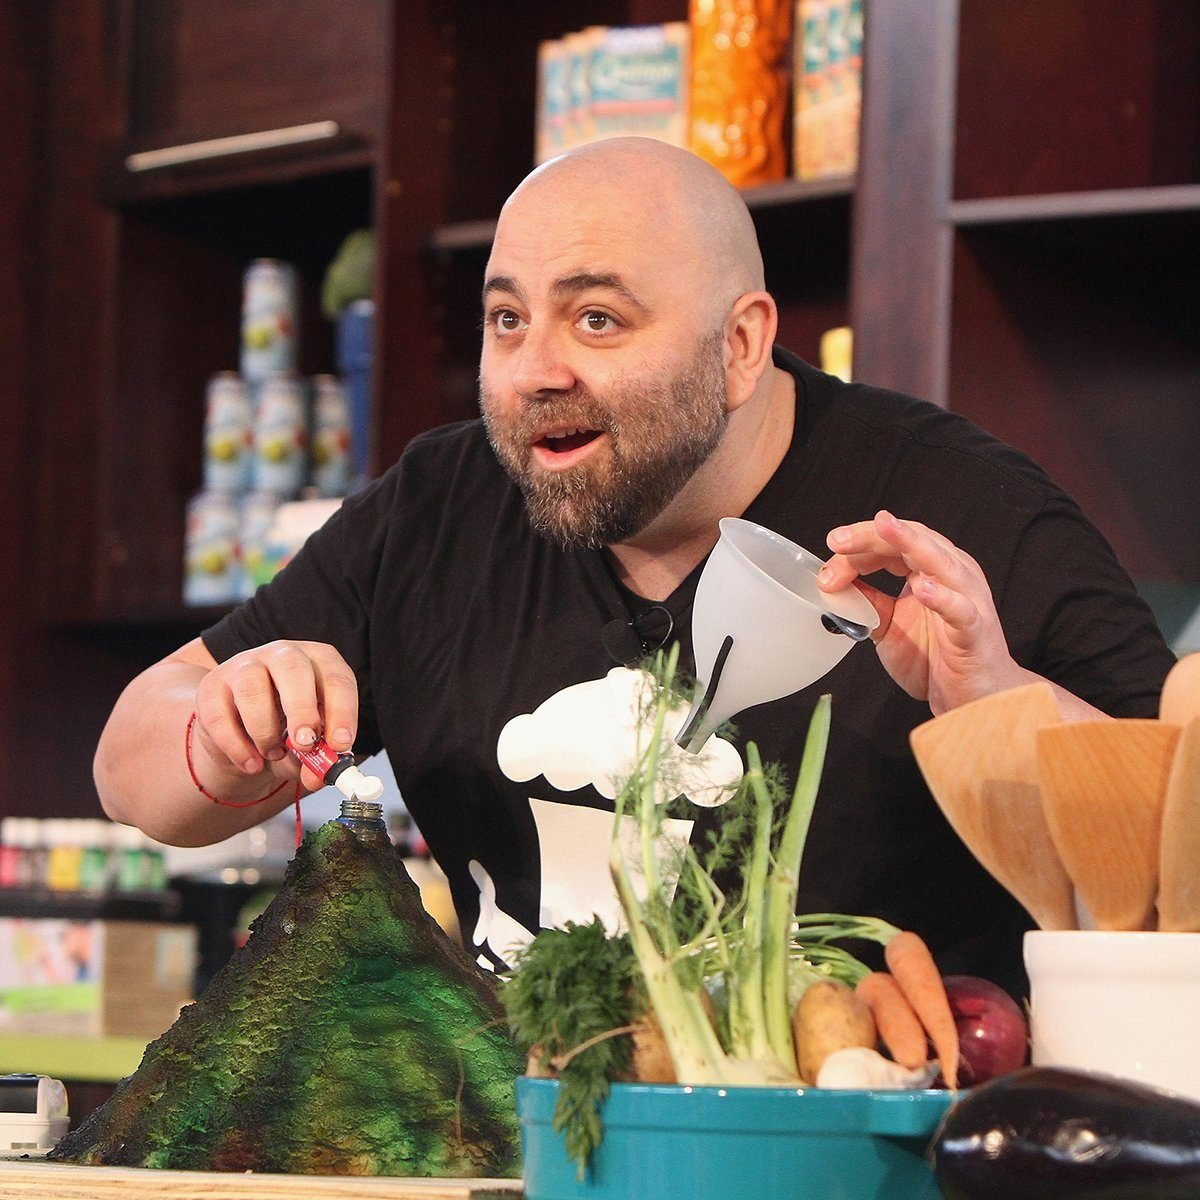 MIAMI, FL - FEBRUARY 21: Chef Duff Goldman prepares food at Fun and Fit as a Family sponsored by Carnival featuring Goya Kidz Kitchen during the 2015 Food Network & Cooking Channel South Beach Wine & Food Festival presented by FOOD & WINE at Jungle Island on February 21, 2015 in Miami, Florida. (Photo by John Parra/Getty Images For SOBEWFF)